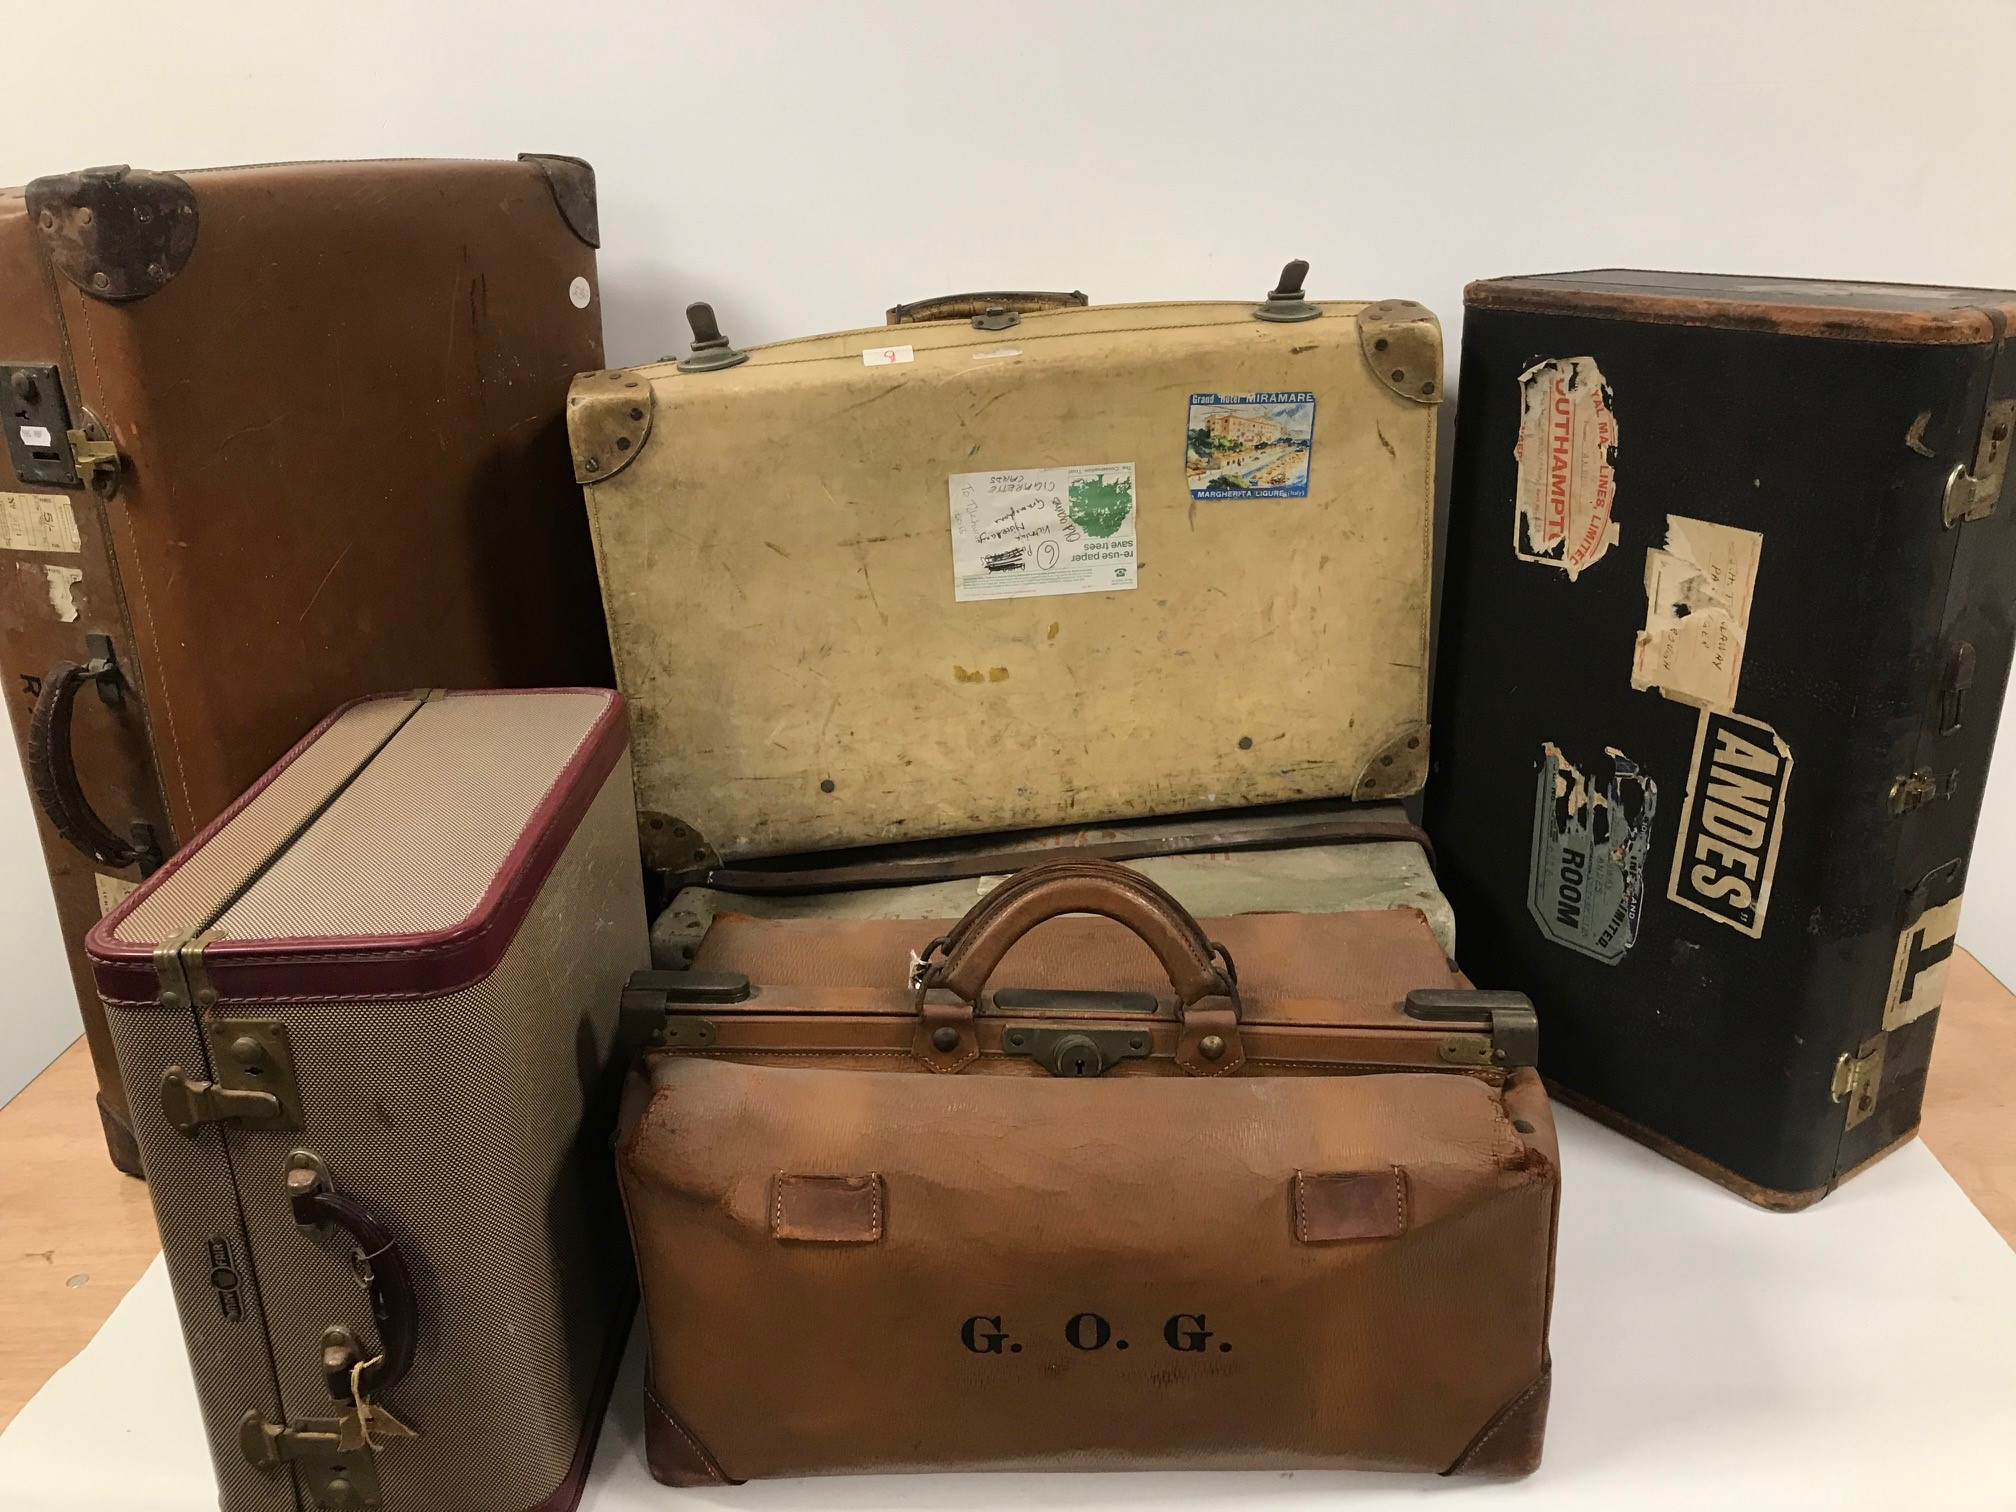 Five items of vintage luggage, including a doctor's style holdall, a white calf hide suitcase, a